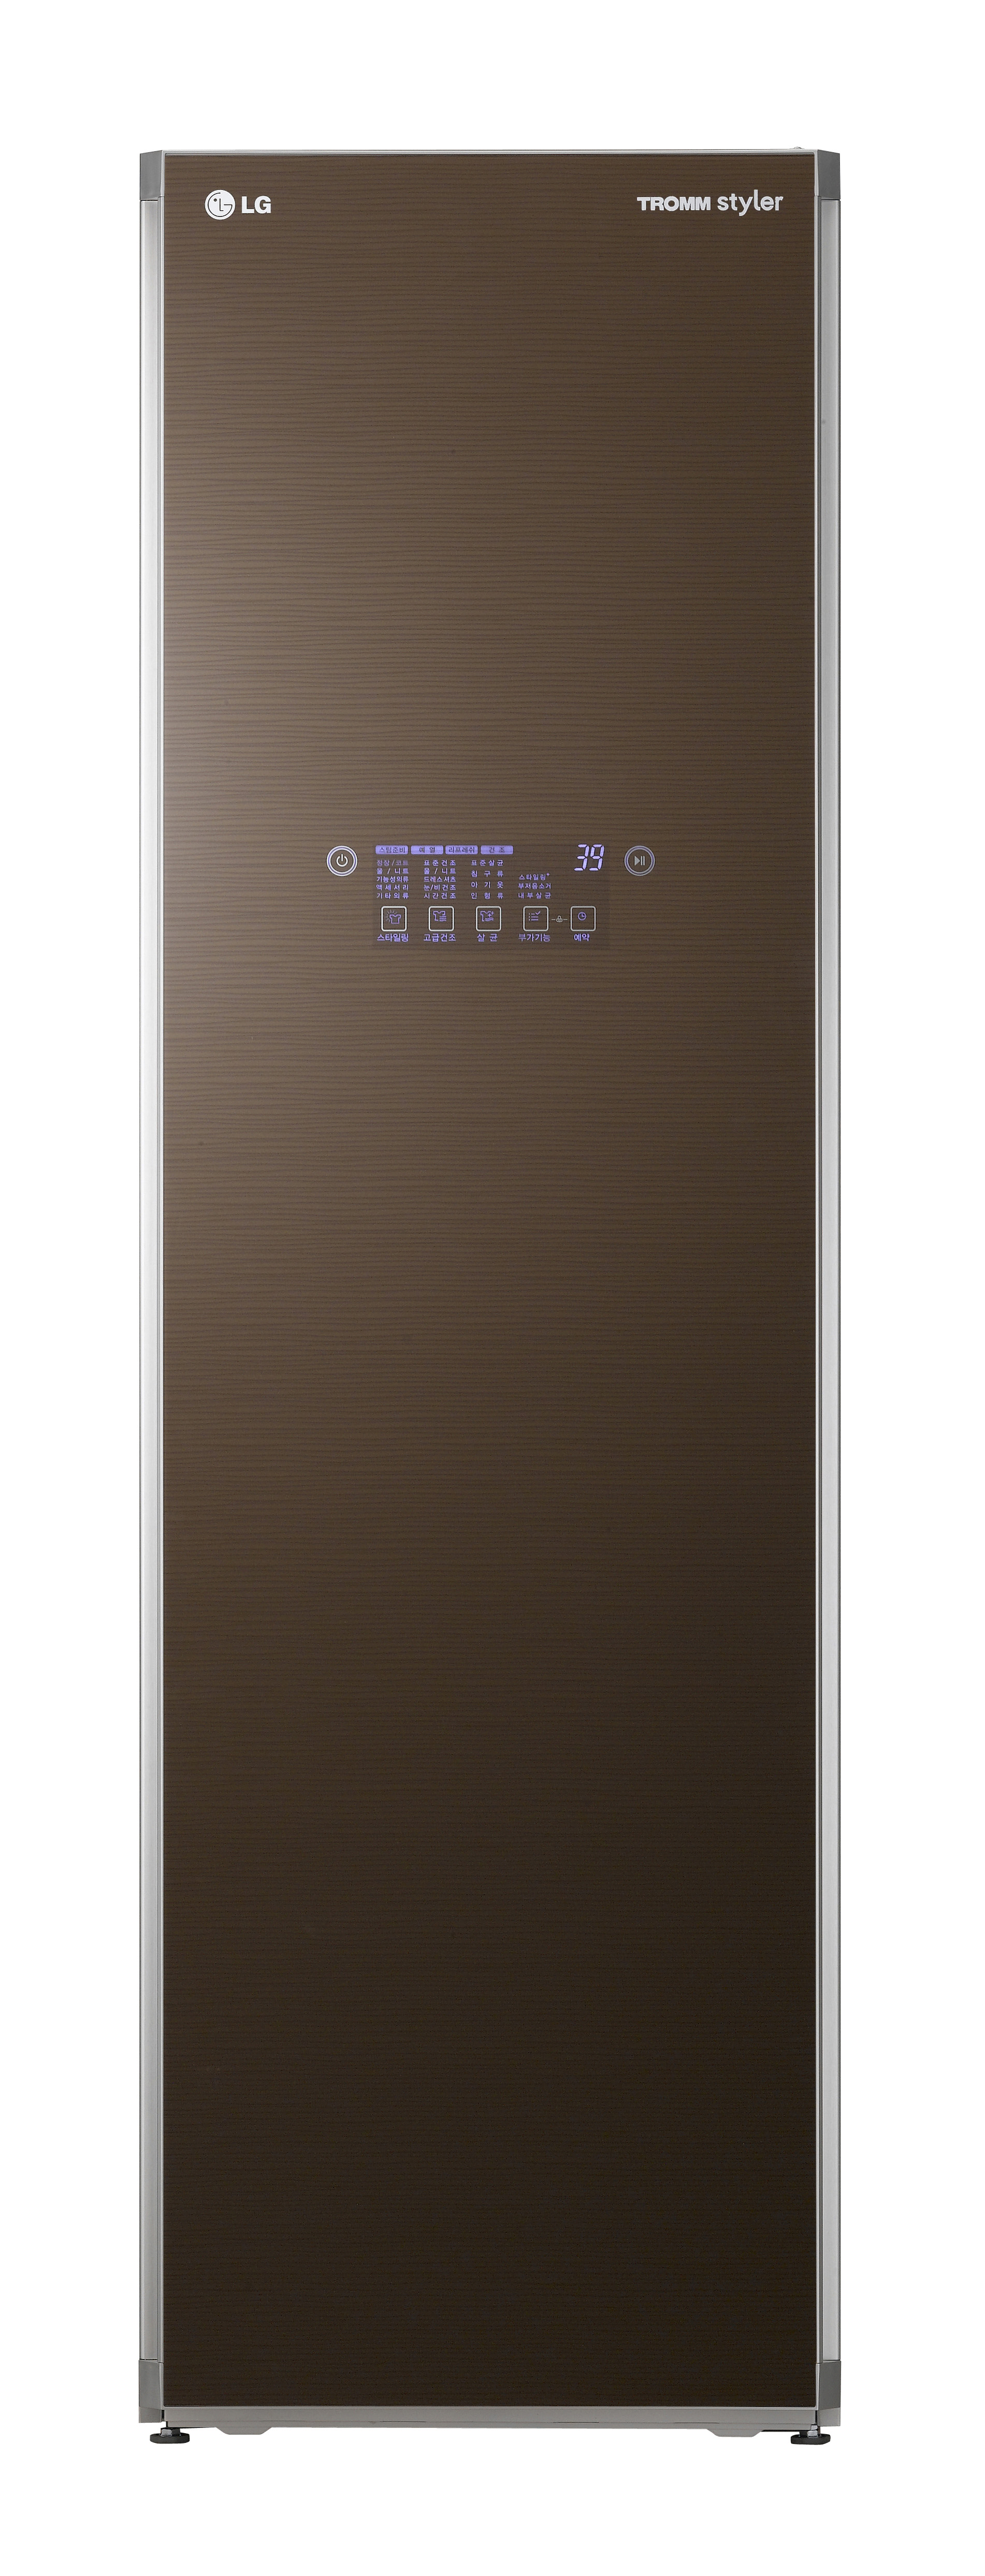 A front view of the LG Styler